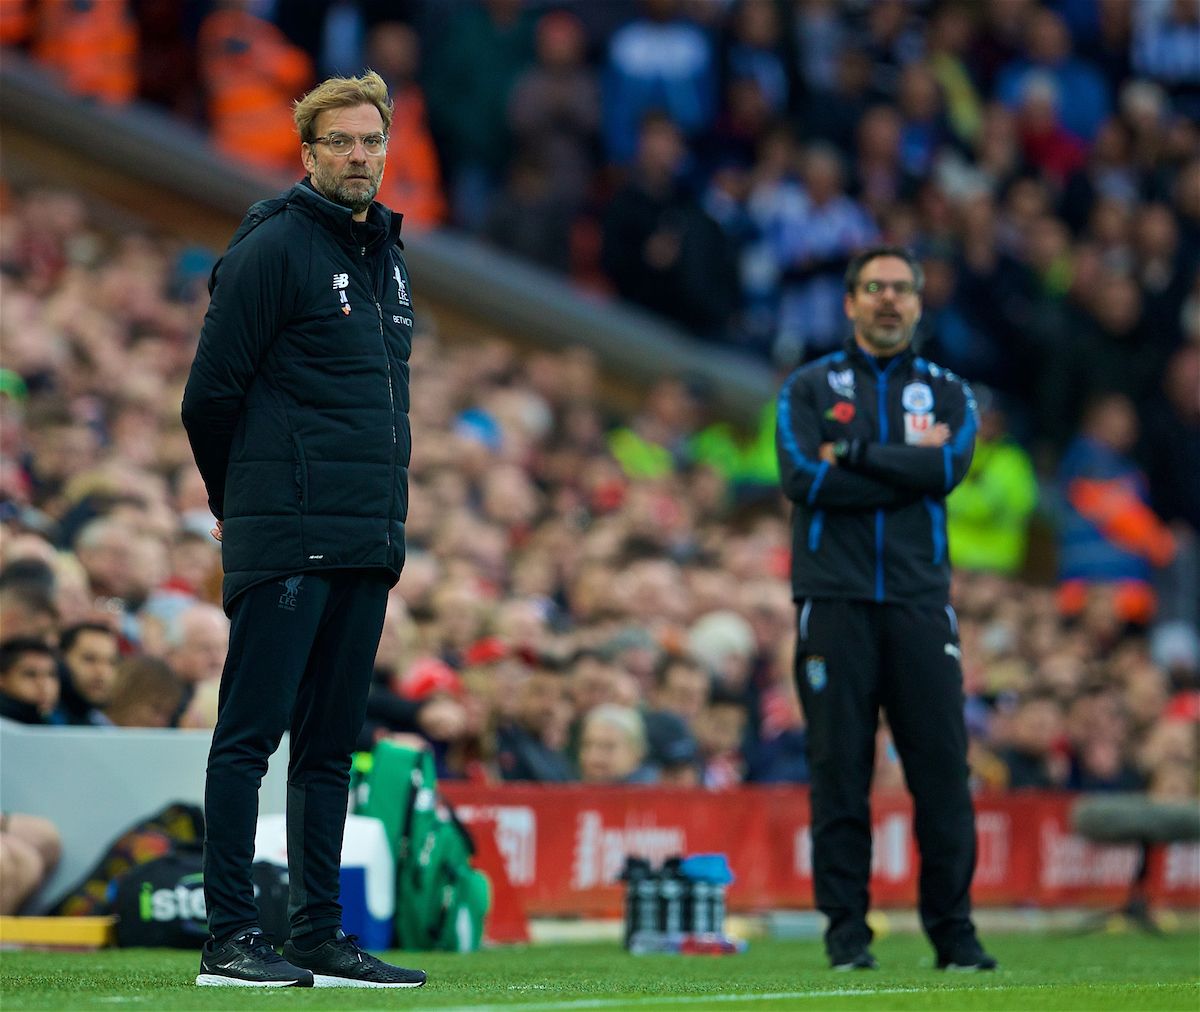 LIVERPOOL, ENGLAND - Saturday, October 28, 2017: Liverpool's manager Jürgen Klopp and Huddersfield Town's manager David Wagner during the FA Premier League match between Liverpool and Huddersfield Town at Anfield. (Pic by David Rawcliffe/Propaganda)